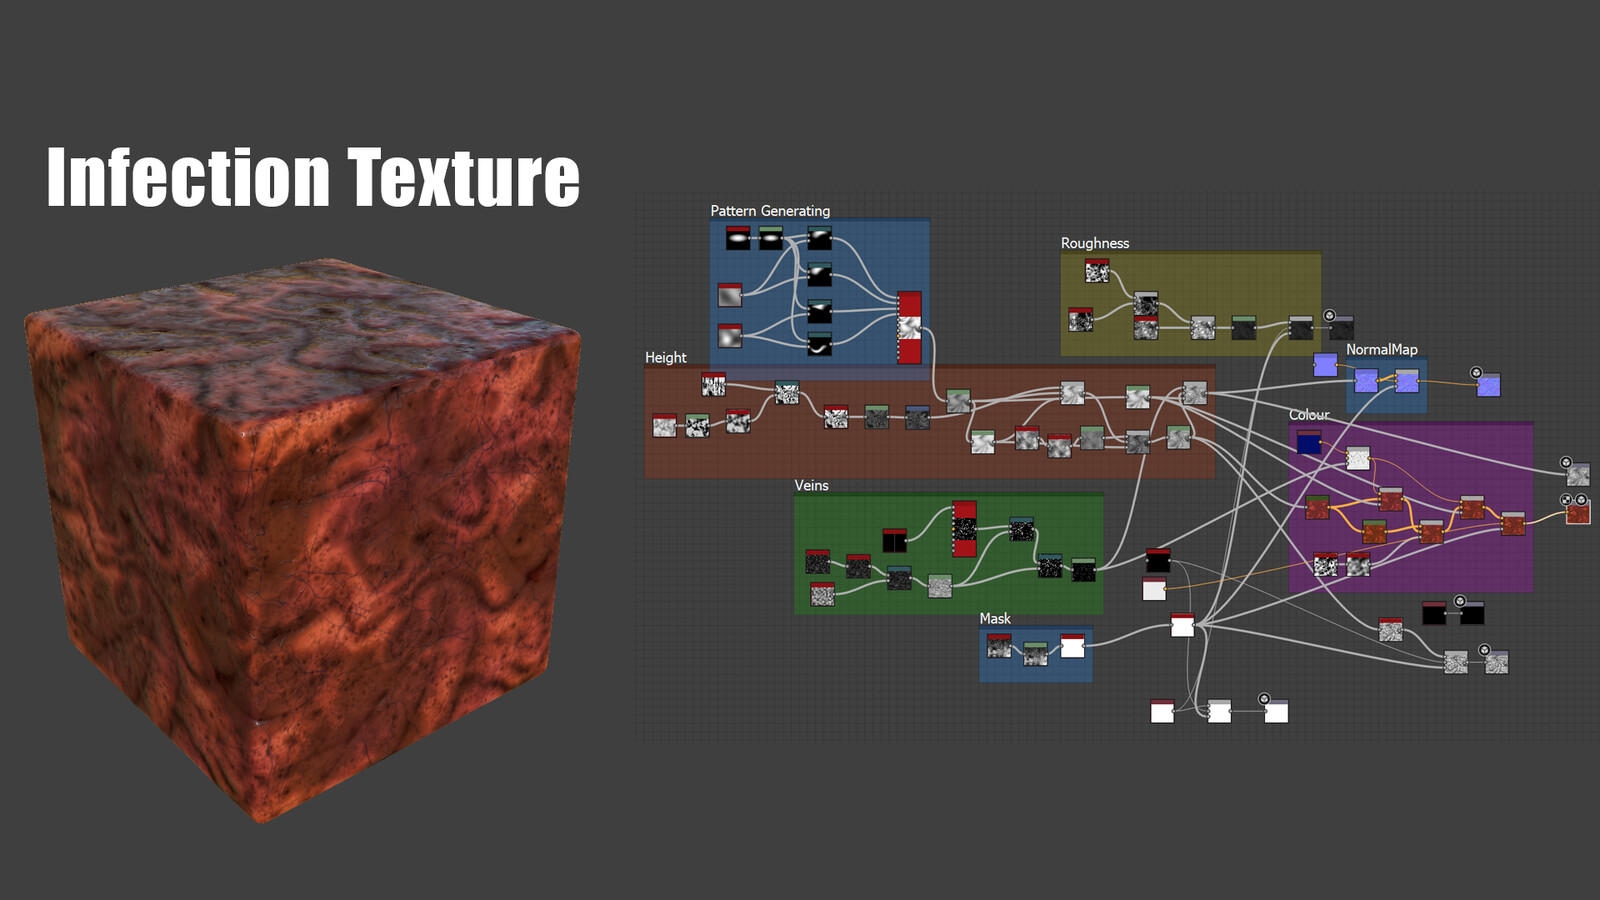 This is the texture I made in Substance Designer for all the infected assets in the scene.